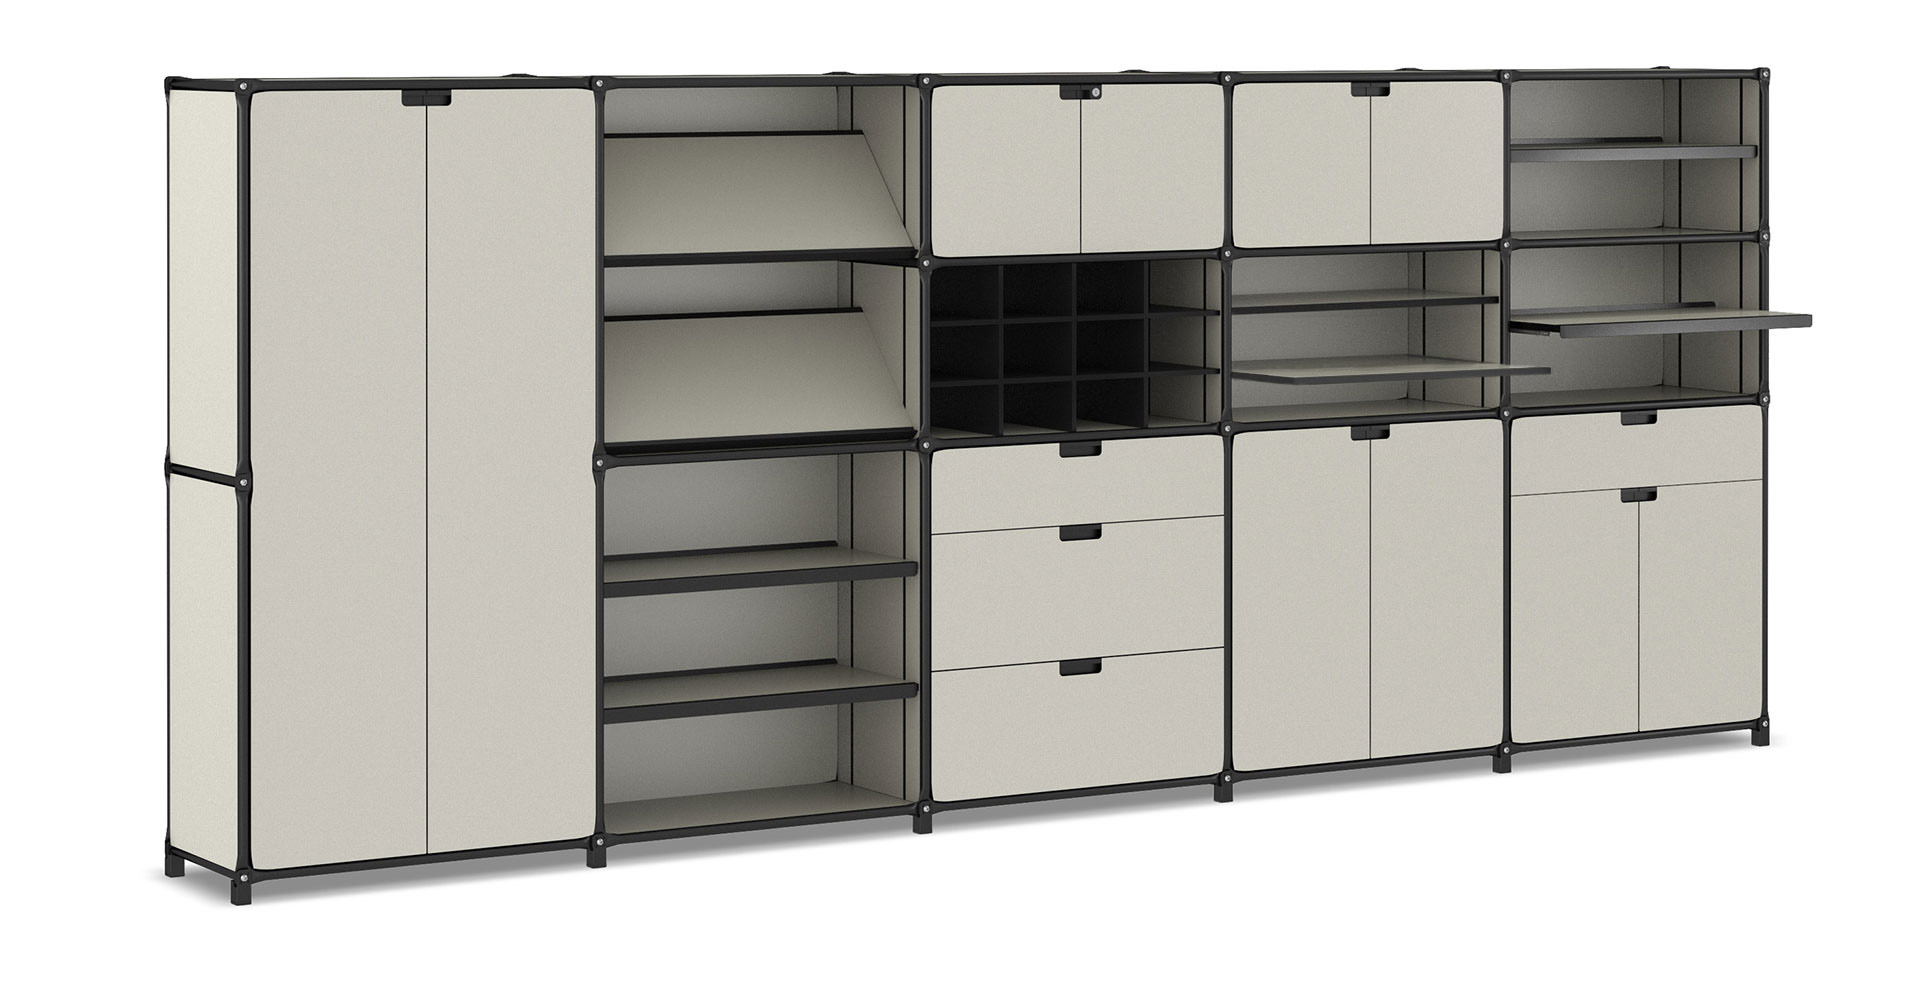 Schienen Rollen System System 180 Our Furniture Assembly System Individual Functional